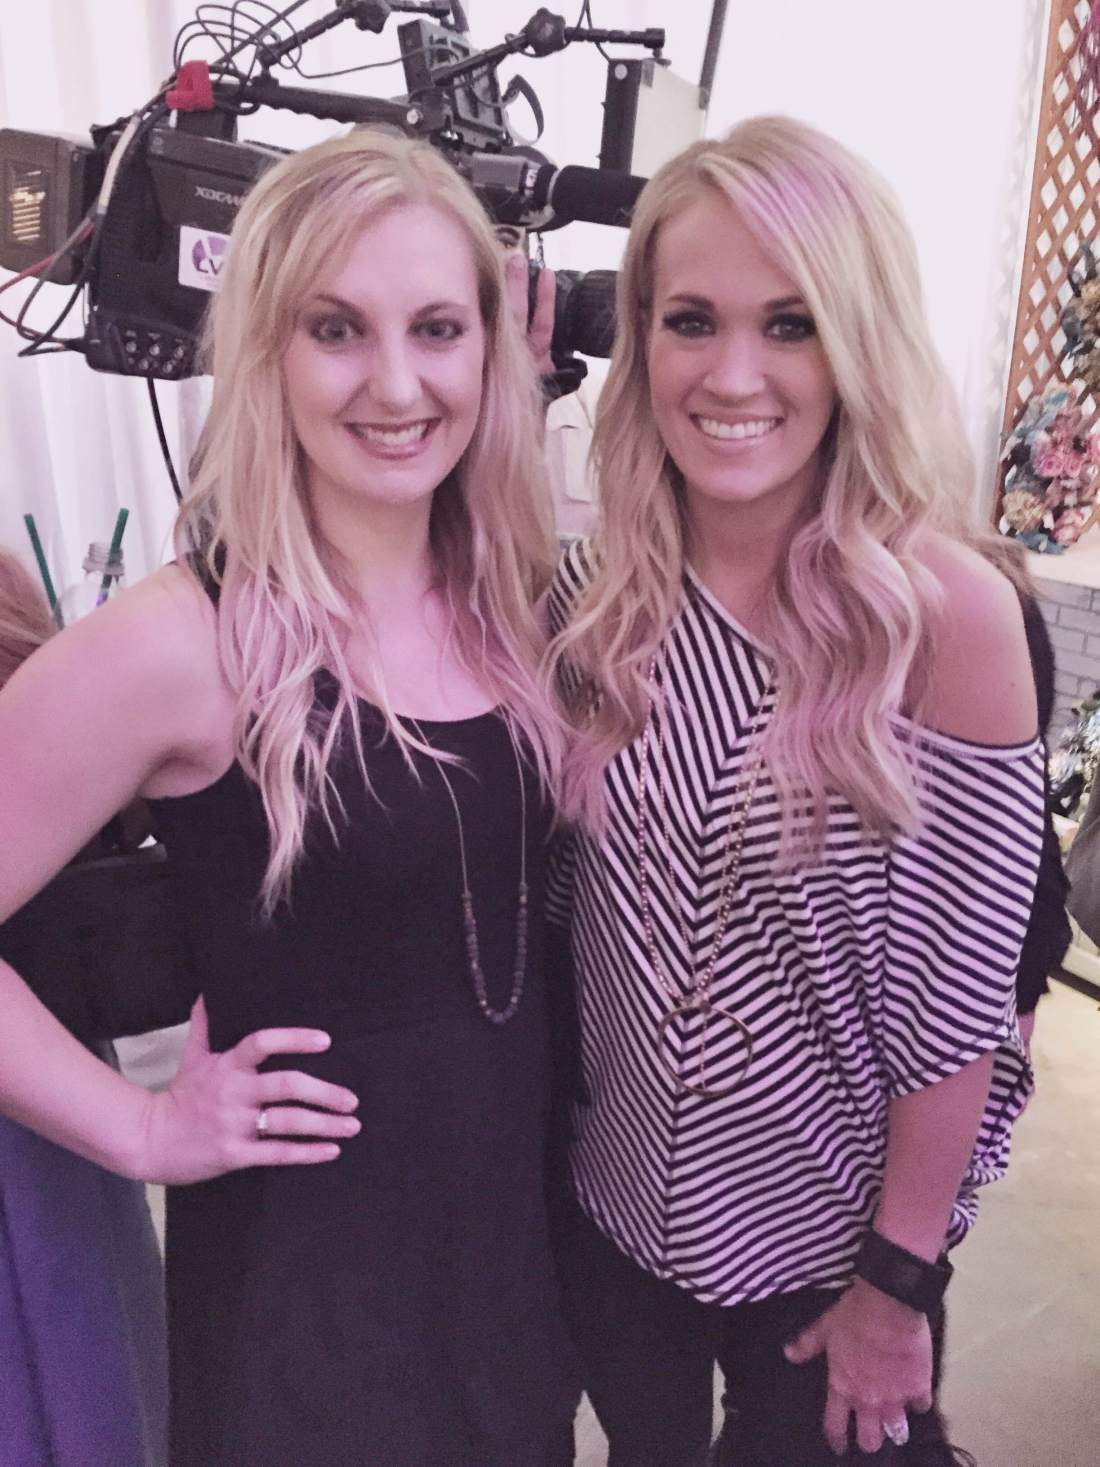 Carrie Underwood nails NYFW debut with interactive shopping experience, models representing real women, and functionally fashionable activewear.